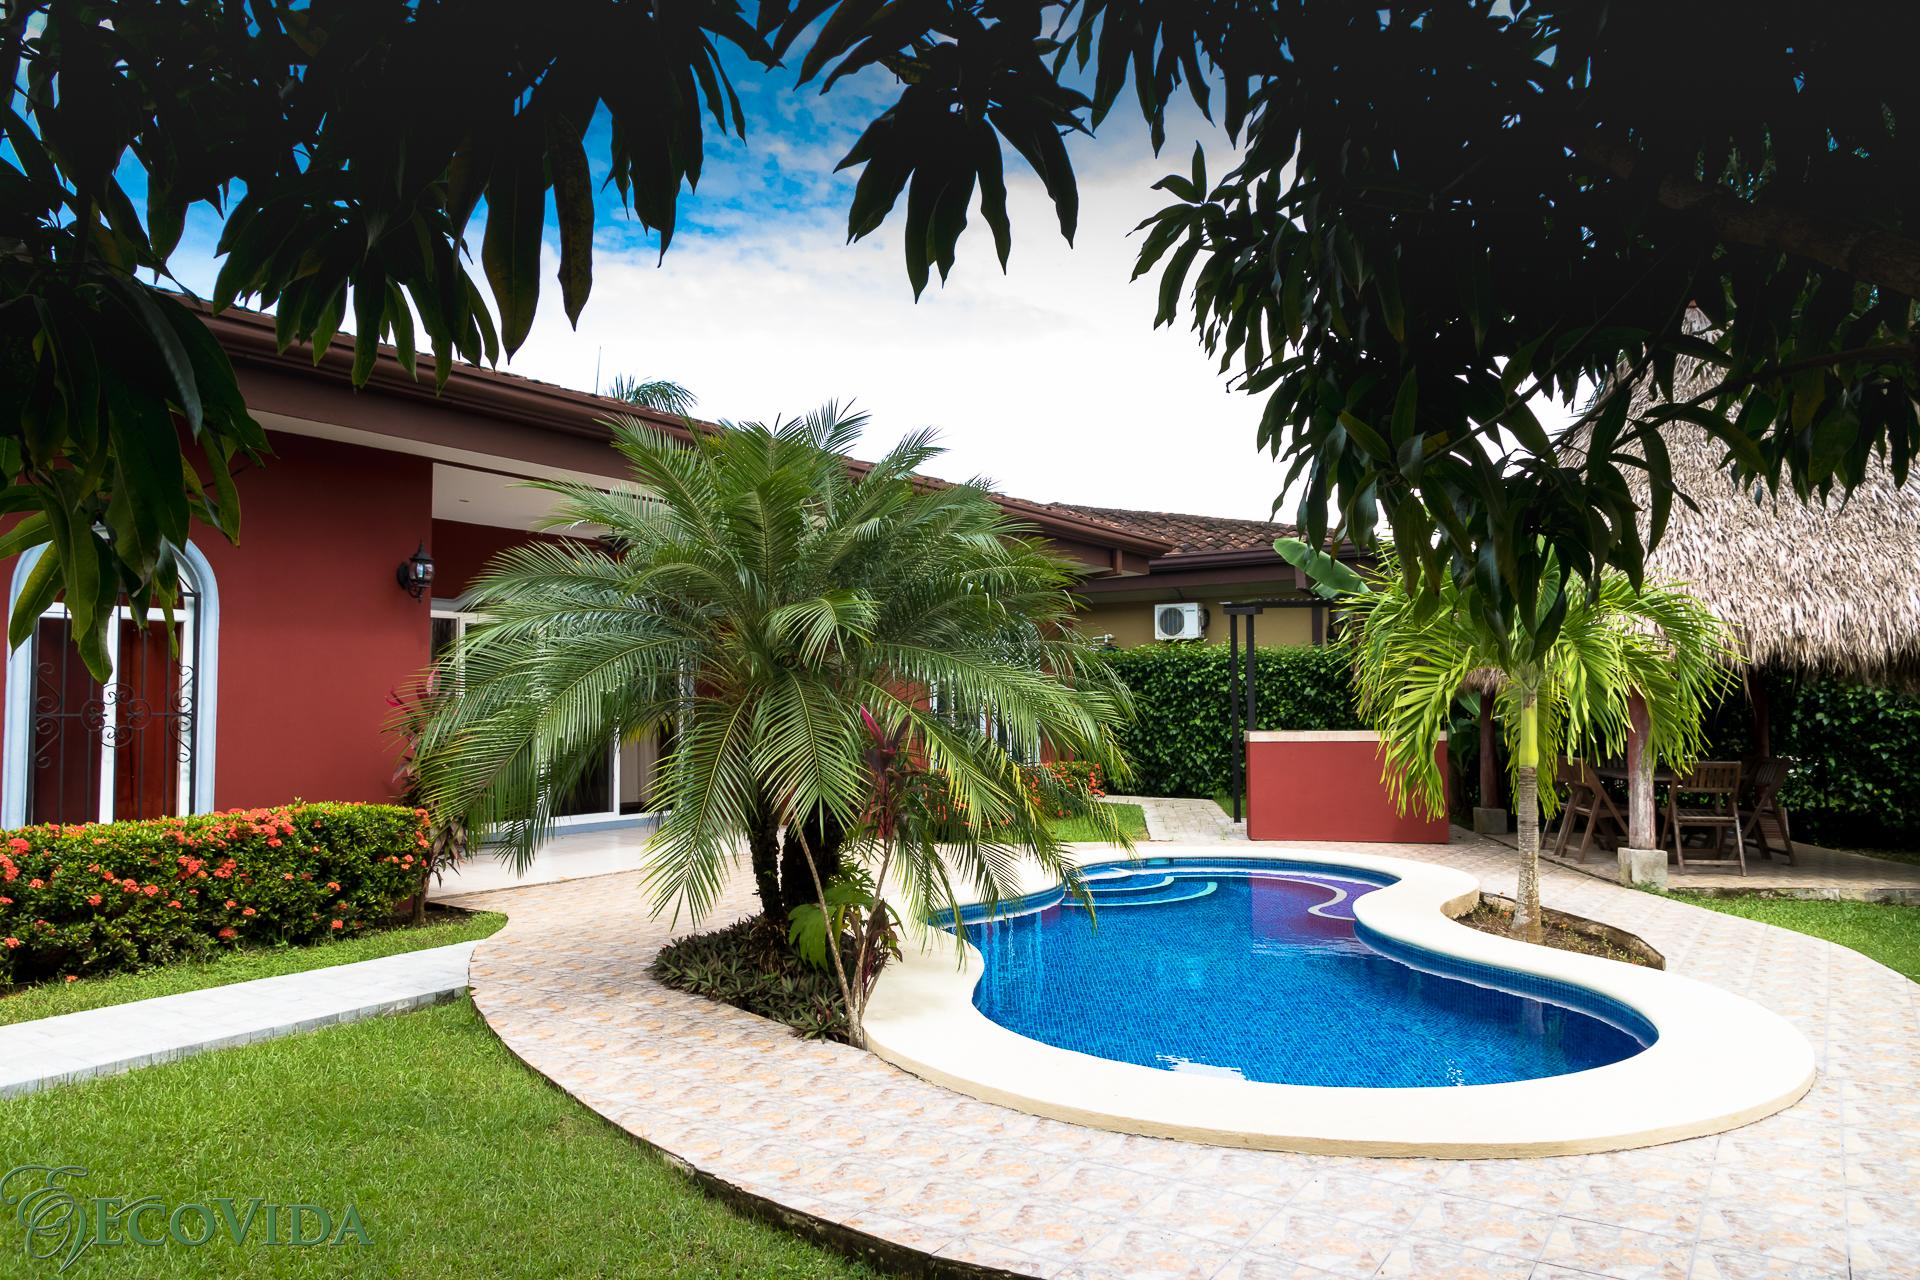 Cash Pooling Y Precios De Transferencia Ecovida Casa Oasis With Private Pool Walk To The Beach